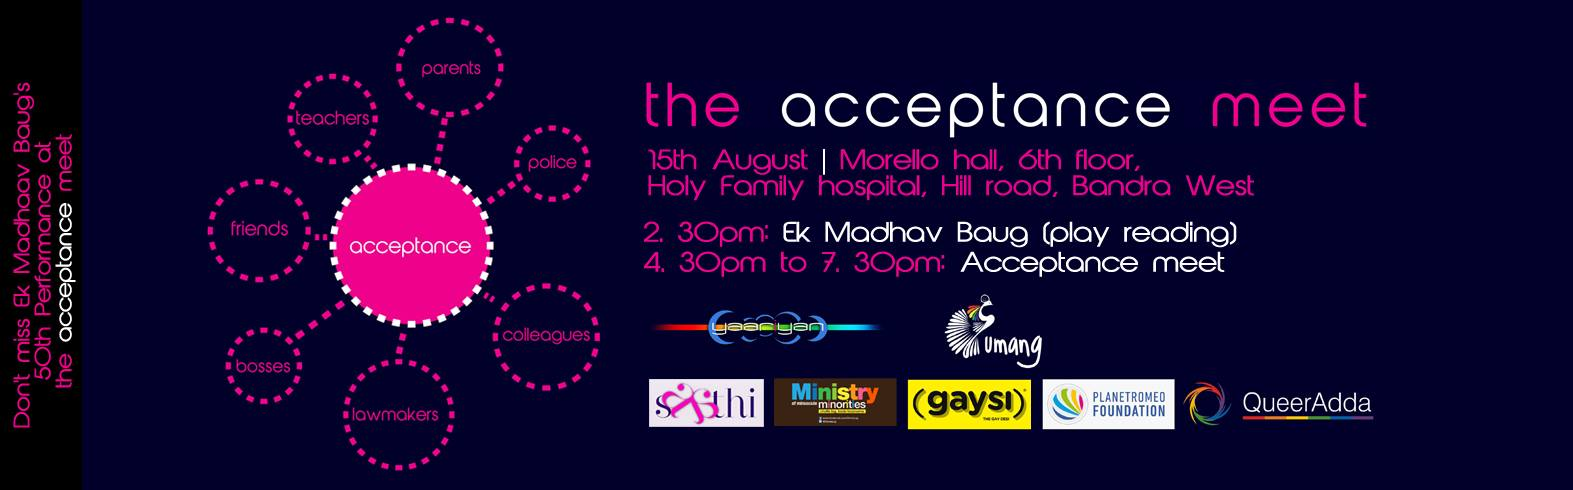 The Acceptance Meet : 15th August, 2014